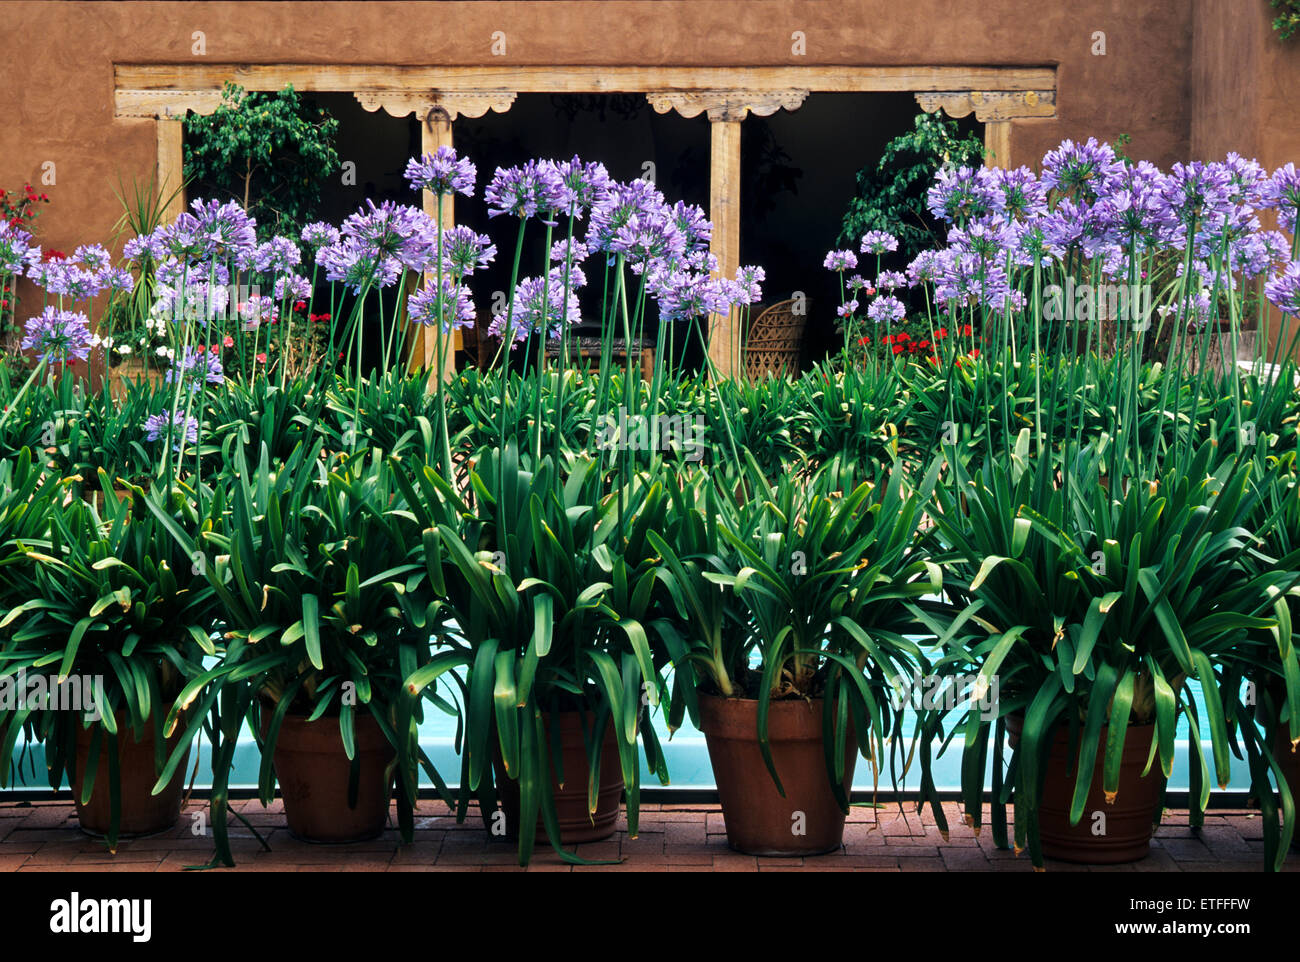 The gardens of Santa Fe,New Mexico, offer a constant supply of delightful surprises and artful delights. - Stock Image